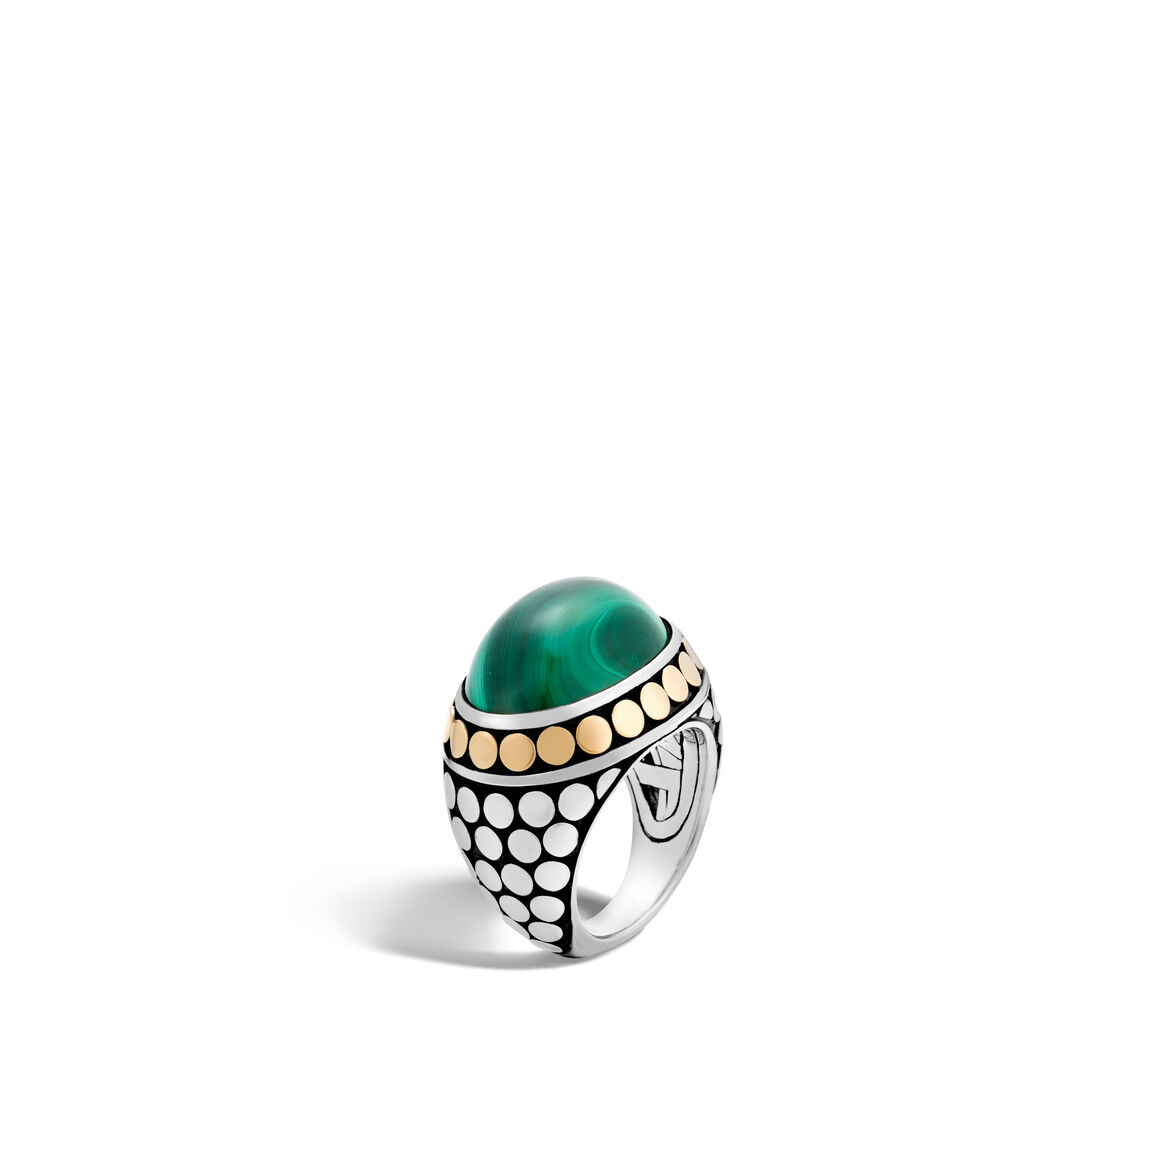 Dot Dome Ring, Silver and 18K Gold, 20x15MM Gemstone